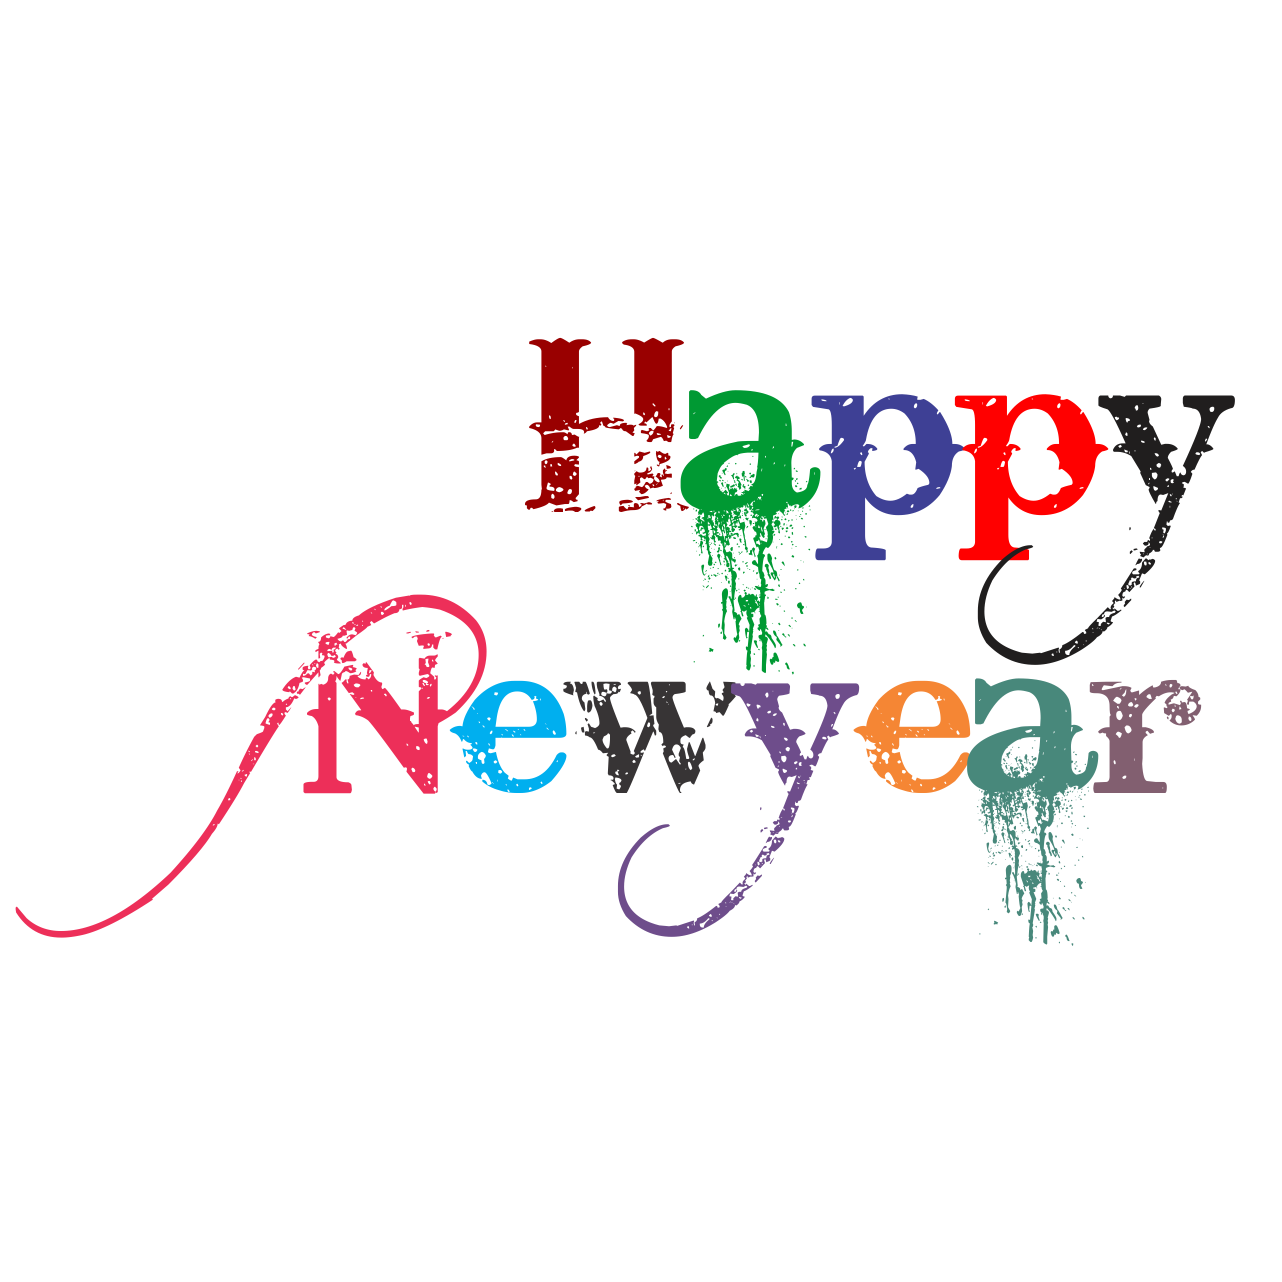 Download PNG image - Happy New Year Png Hd - New PNG HD